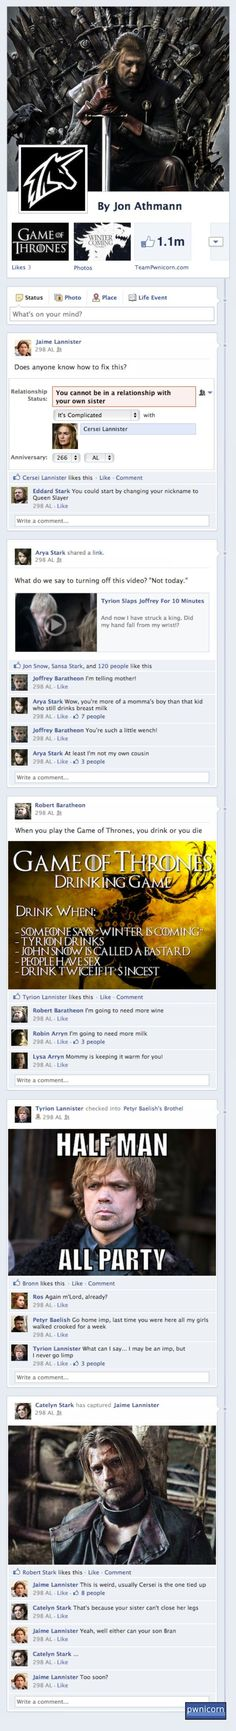 If Game of Thrones Characters were on Facebook on http://www.drlima.net